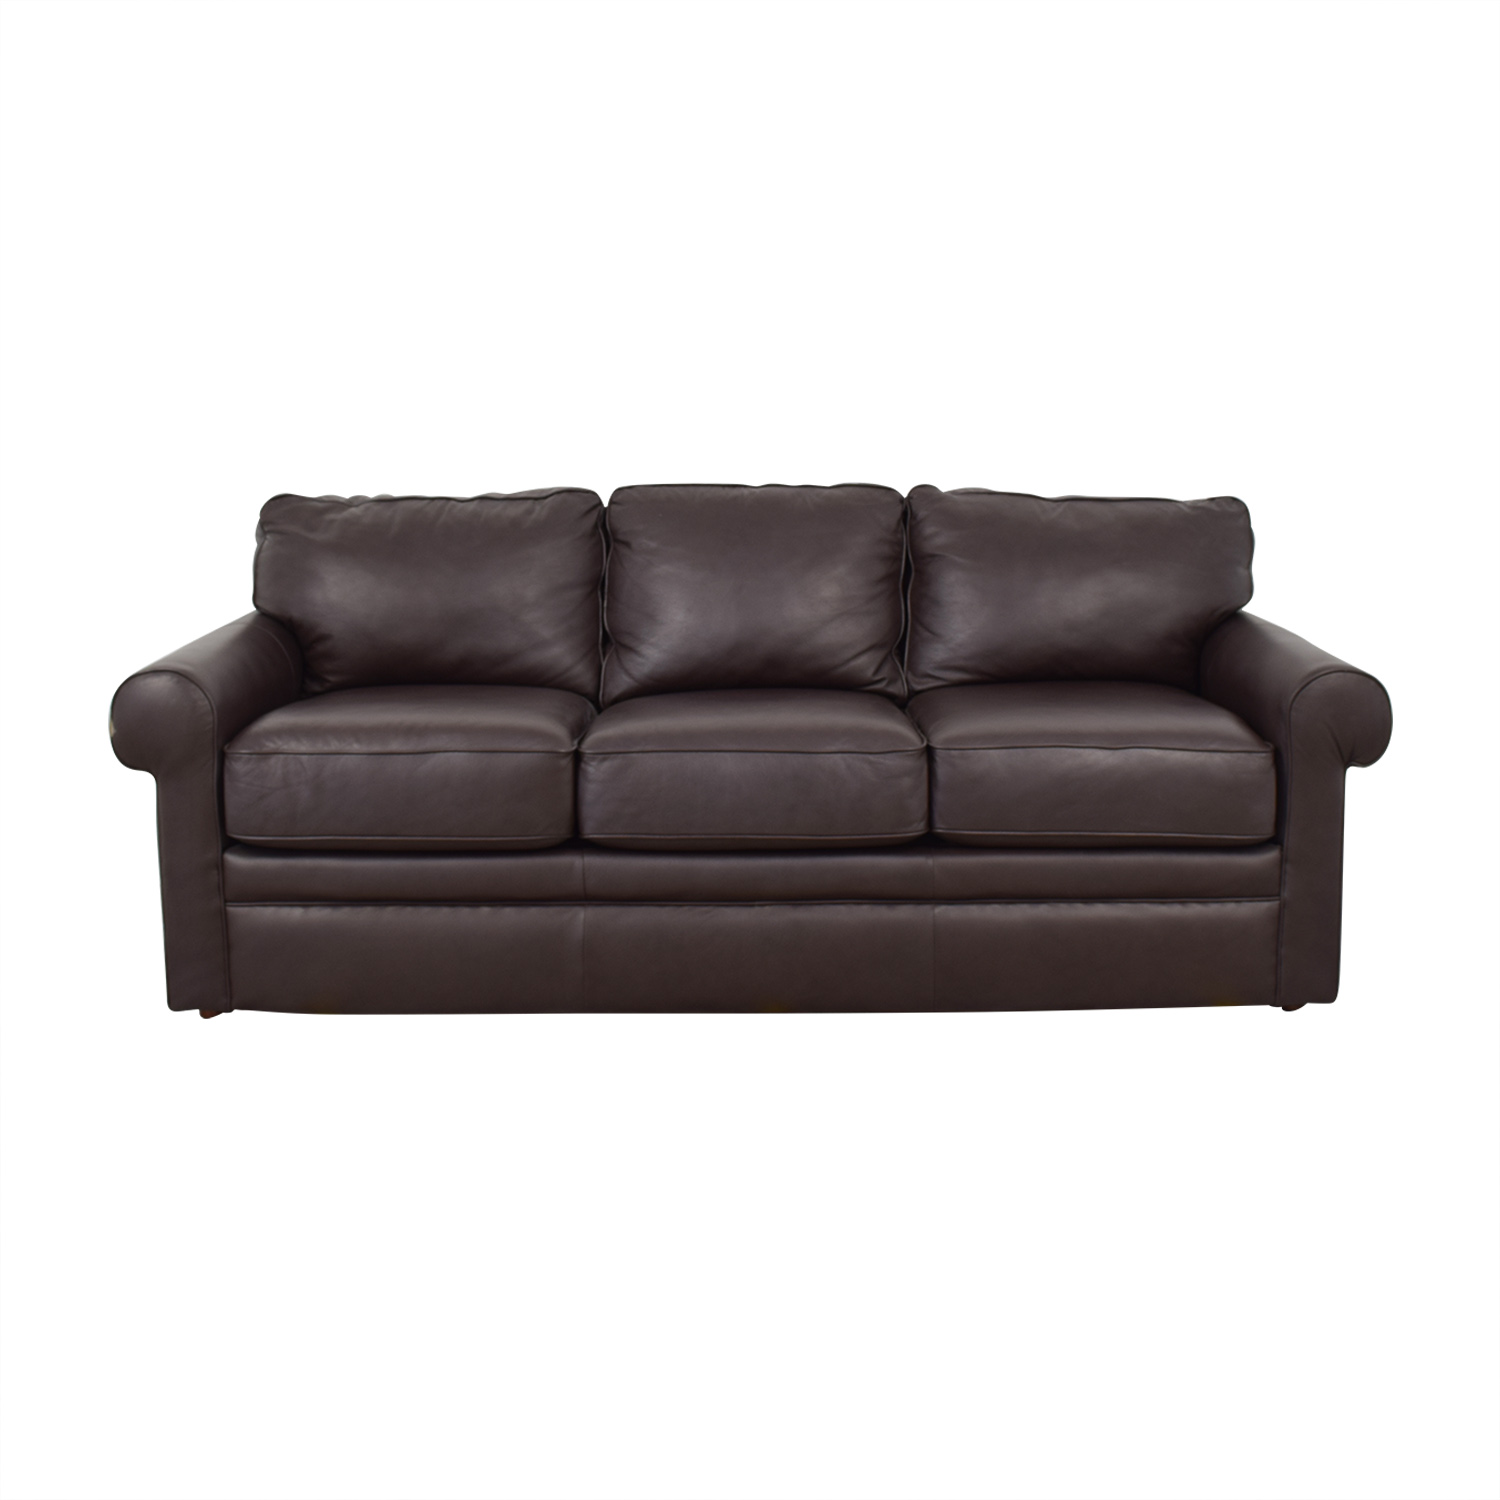 La-Z-Boy La-Z-Boy Collins Leather Sofa nyc